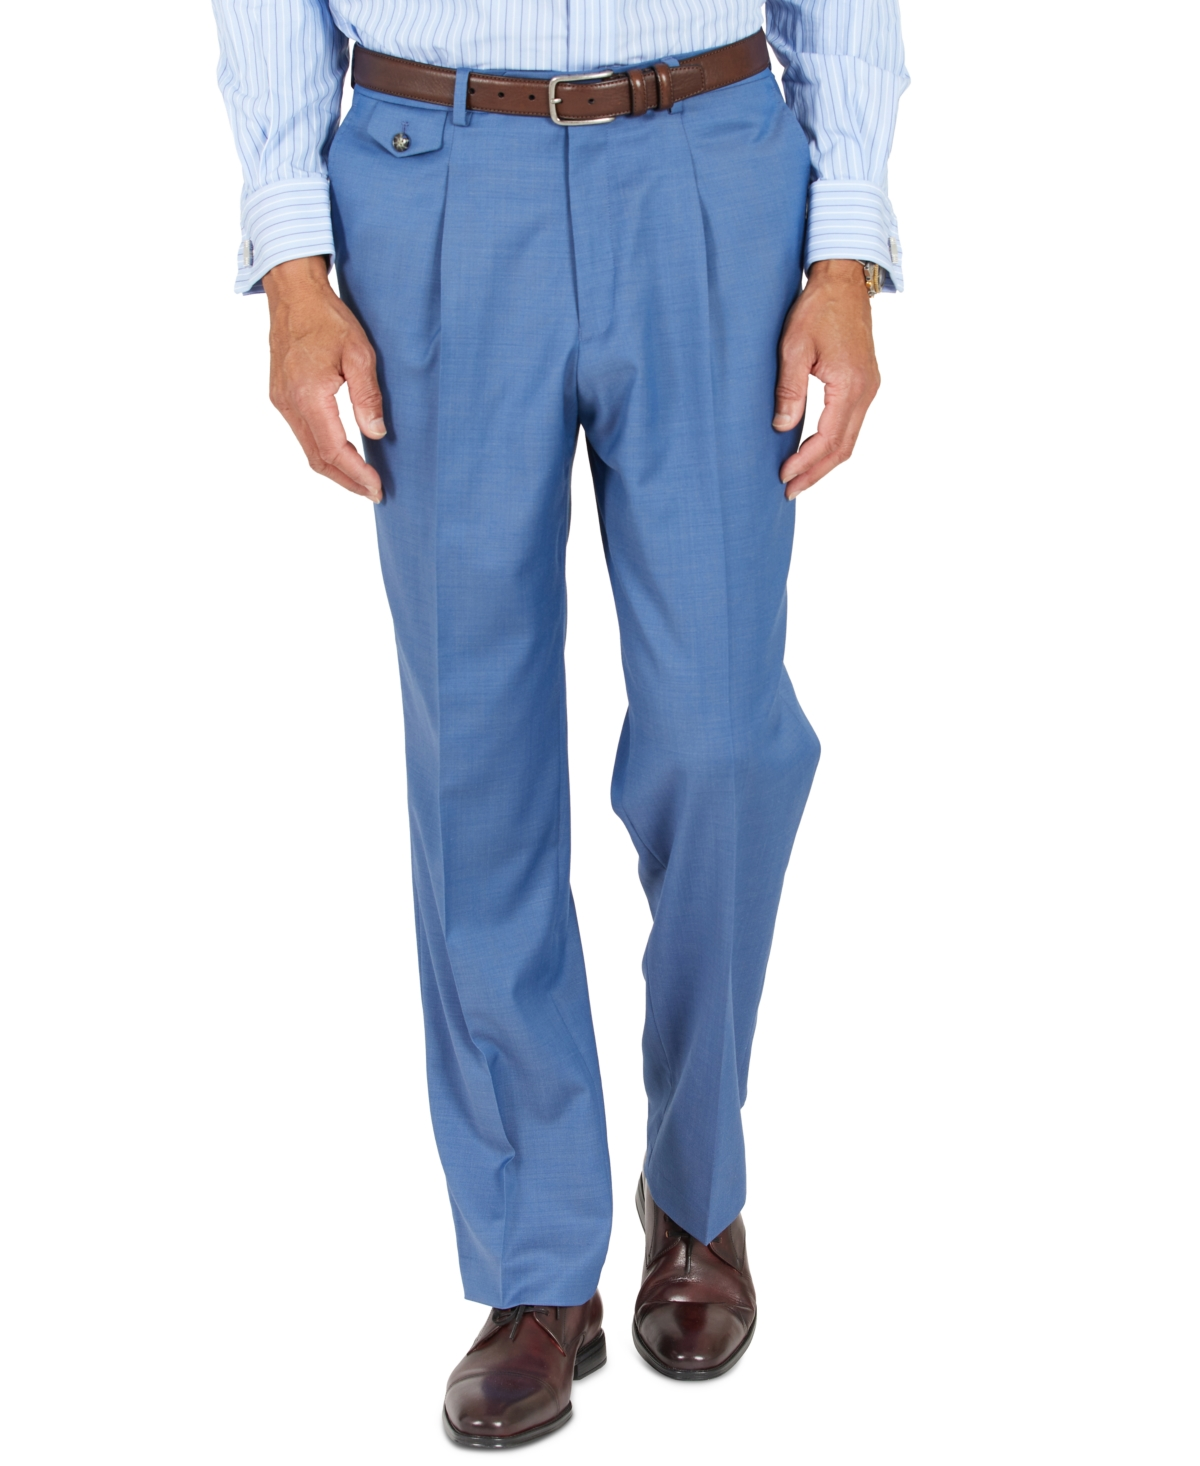 1950s Men's Pants, Trousers, Shorts | Rockabilly Jeans, Greaser Styles Tayion Collection Mens Blue Solid Classic-Fit Wool Suit Separate Pants $175.00 AT vintagedancer.com